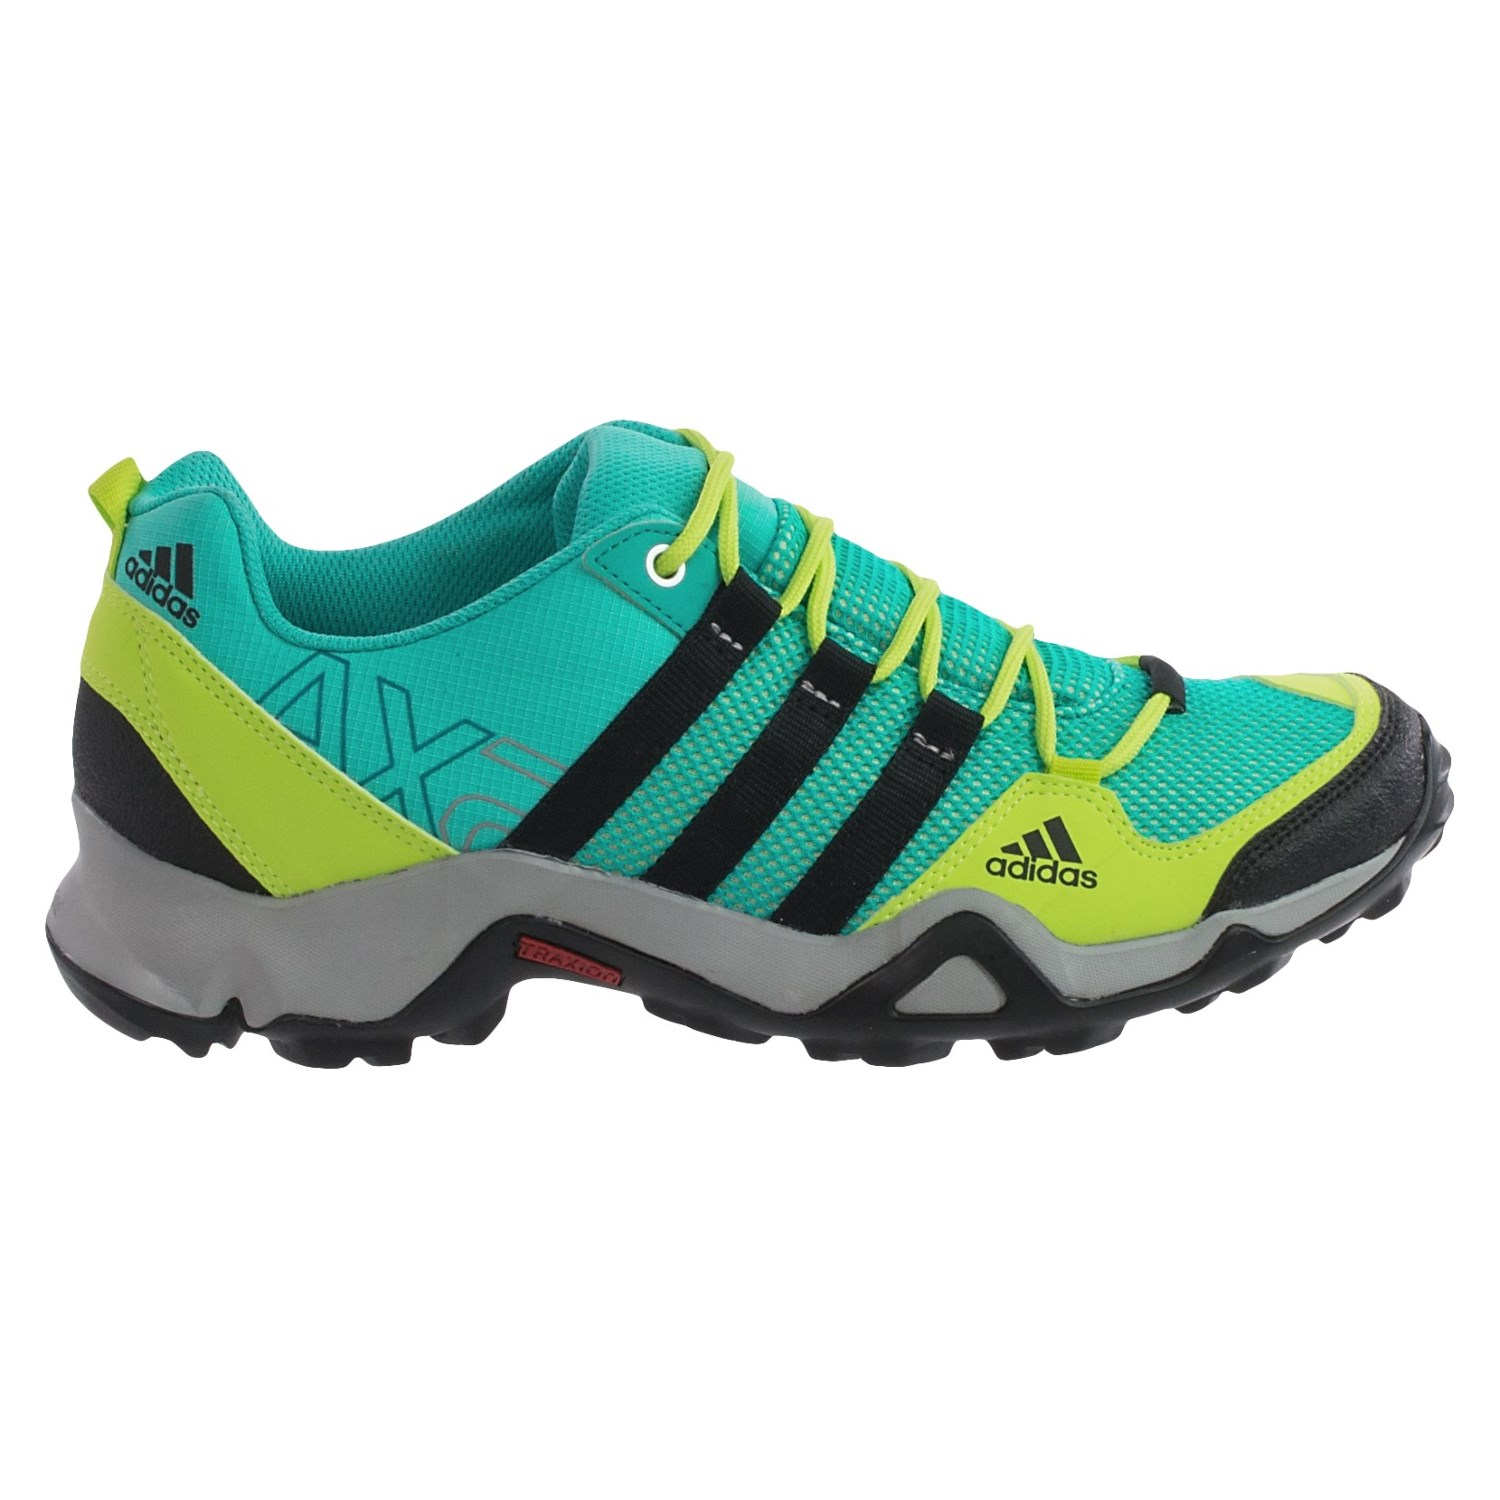 adidas outdoor ax 2 trail running shoes for 9636v